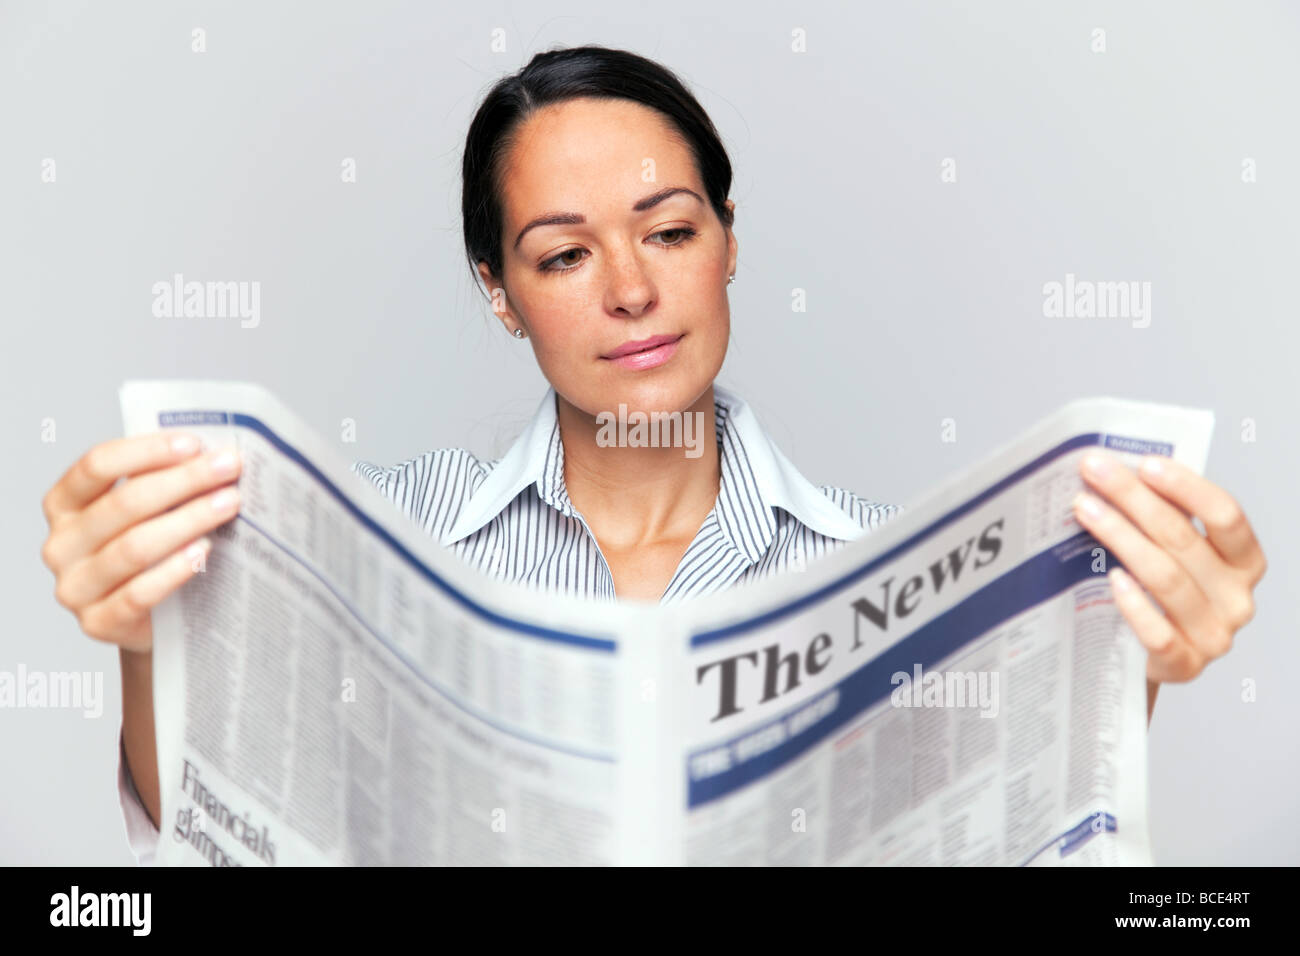 Businesswoman reading a newspaper focus is on her face and newspaper is blurred - Stock Image